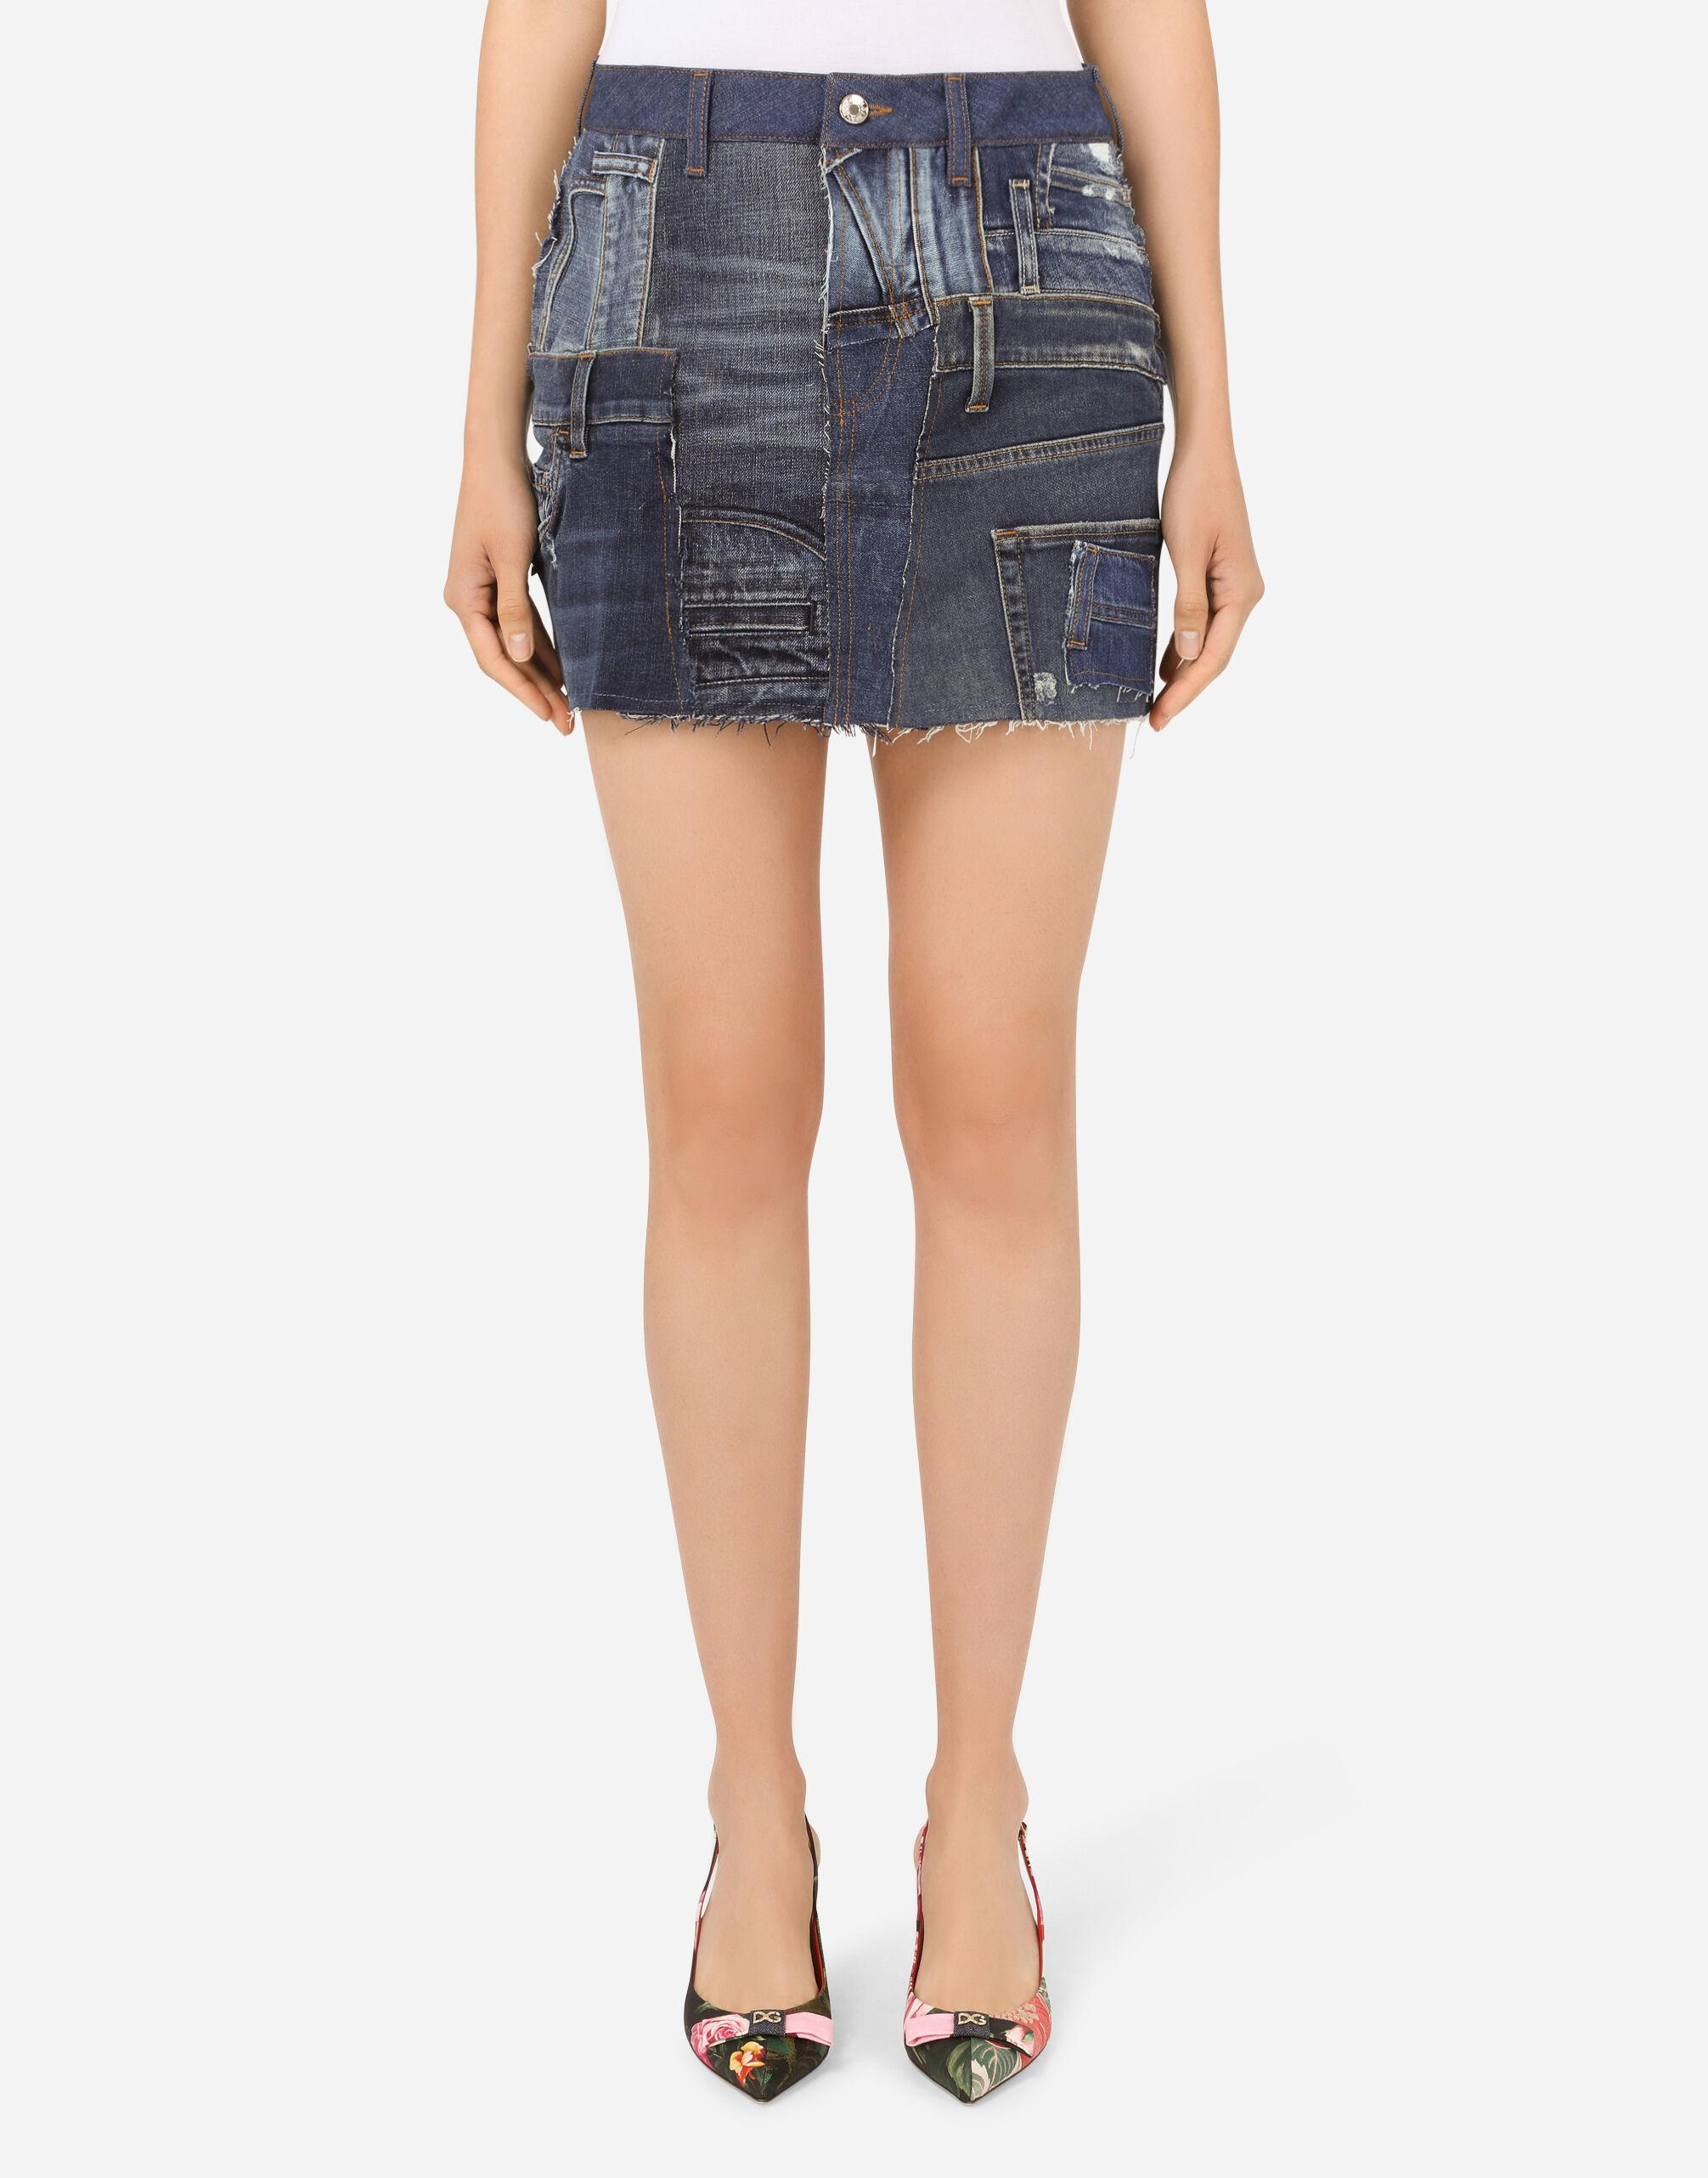 Patchwork denim miniskirt